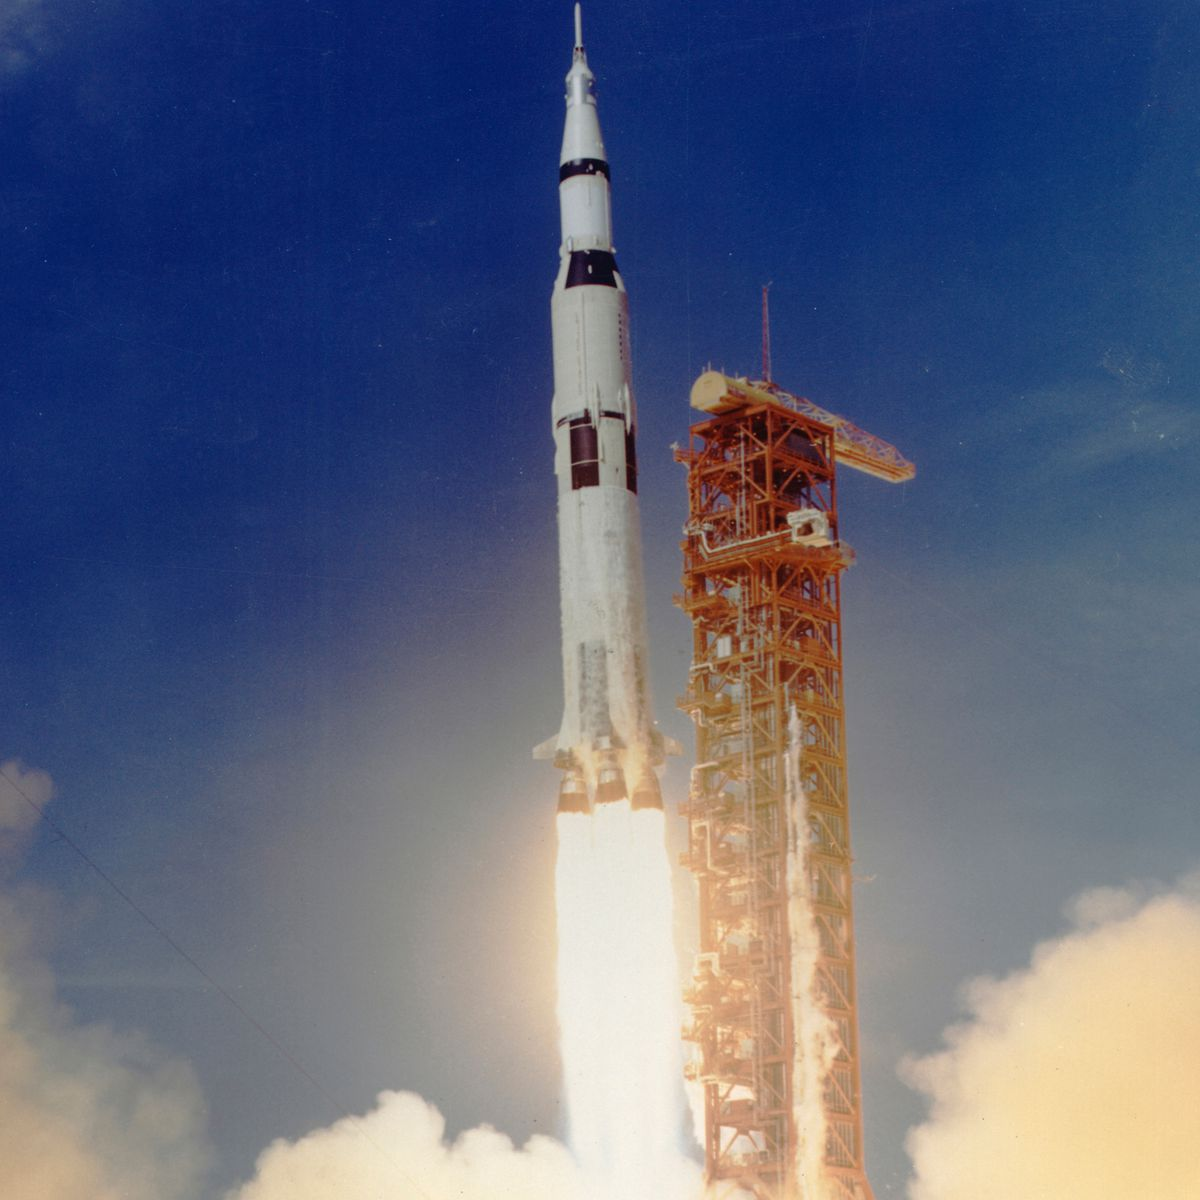 Apollo 11 lifts off